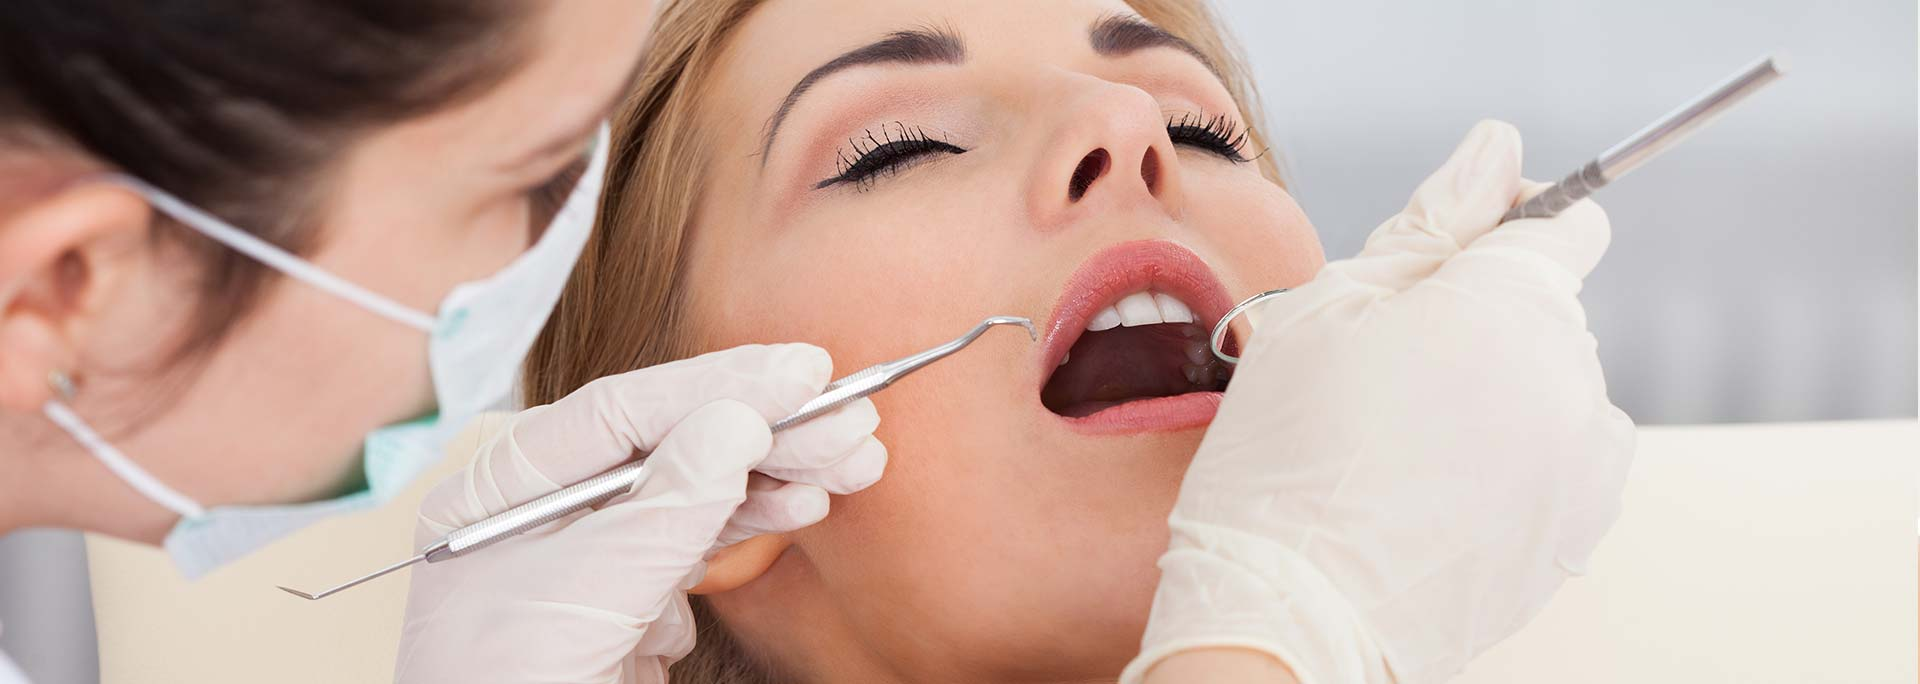 Chestereme Sedation Dentistry